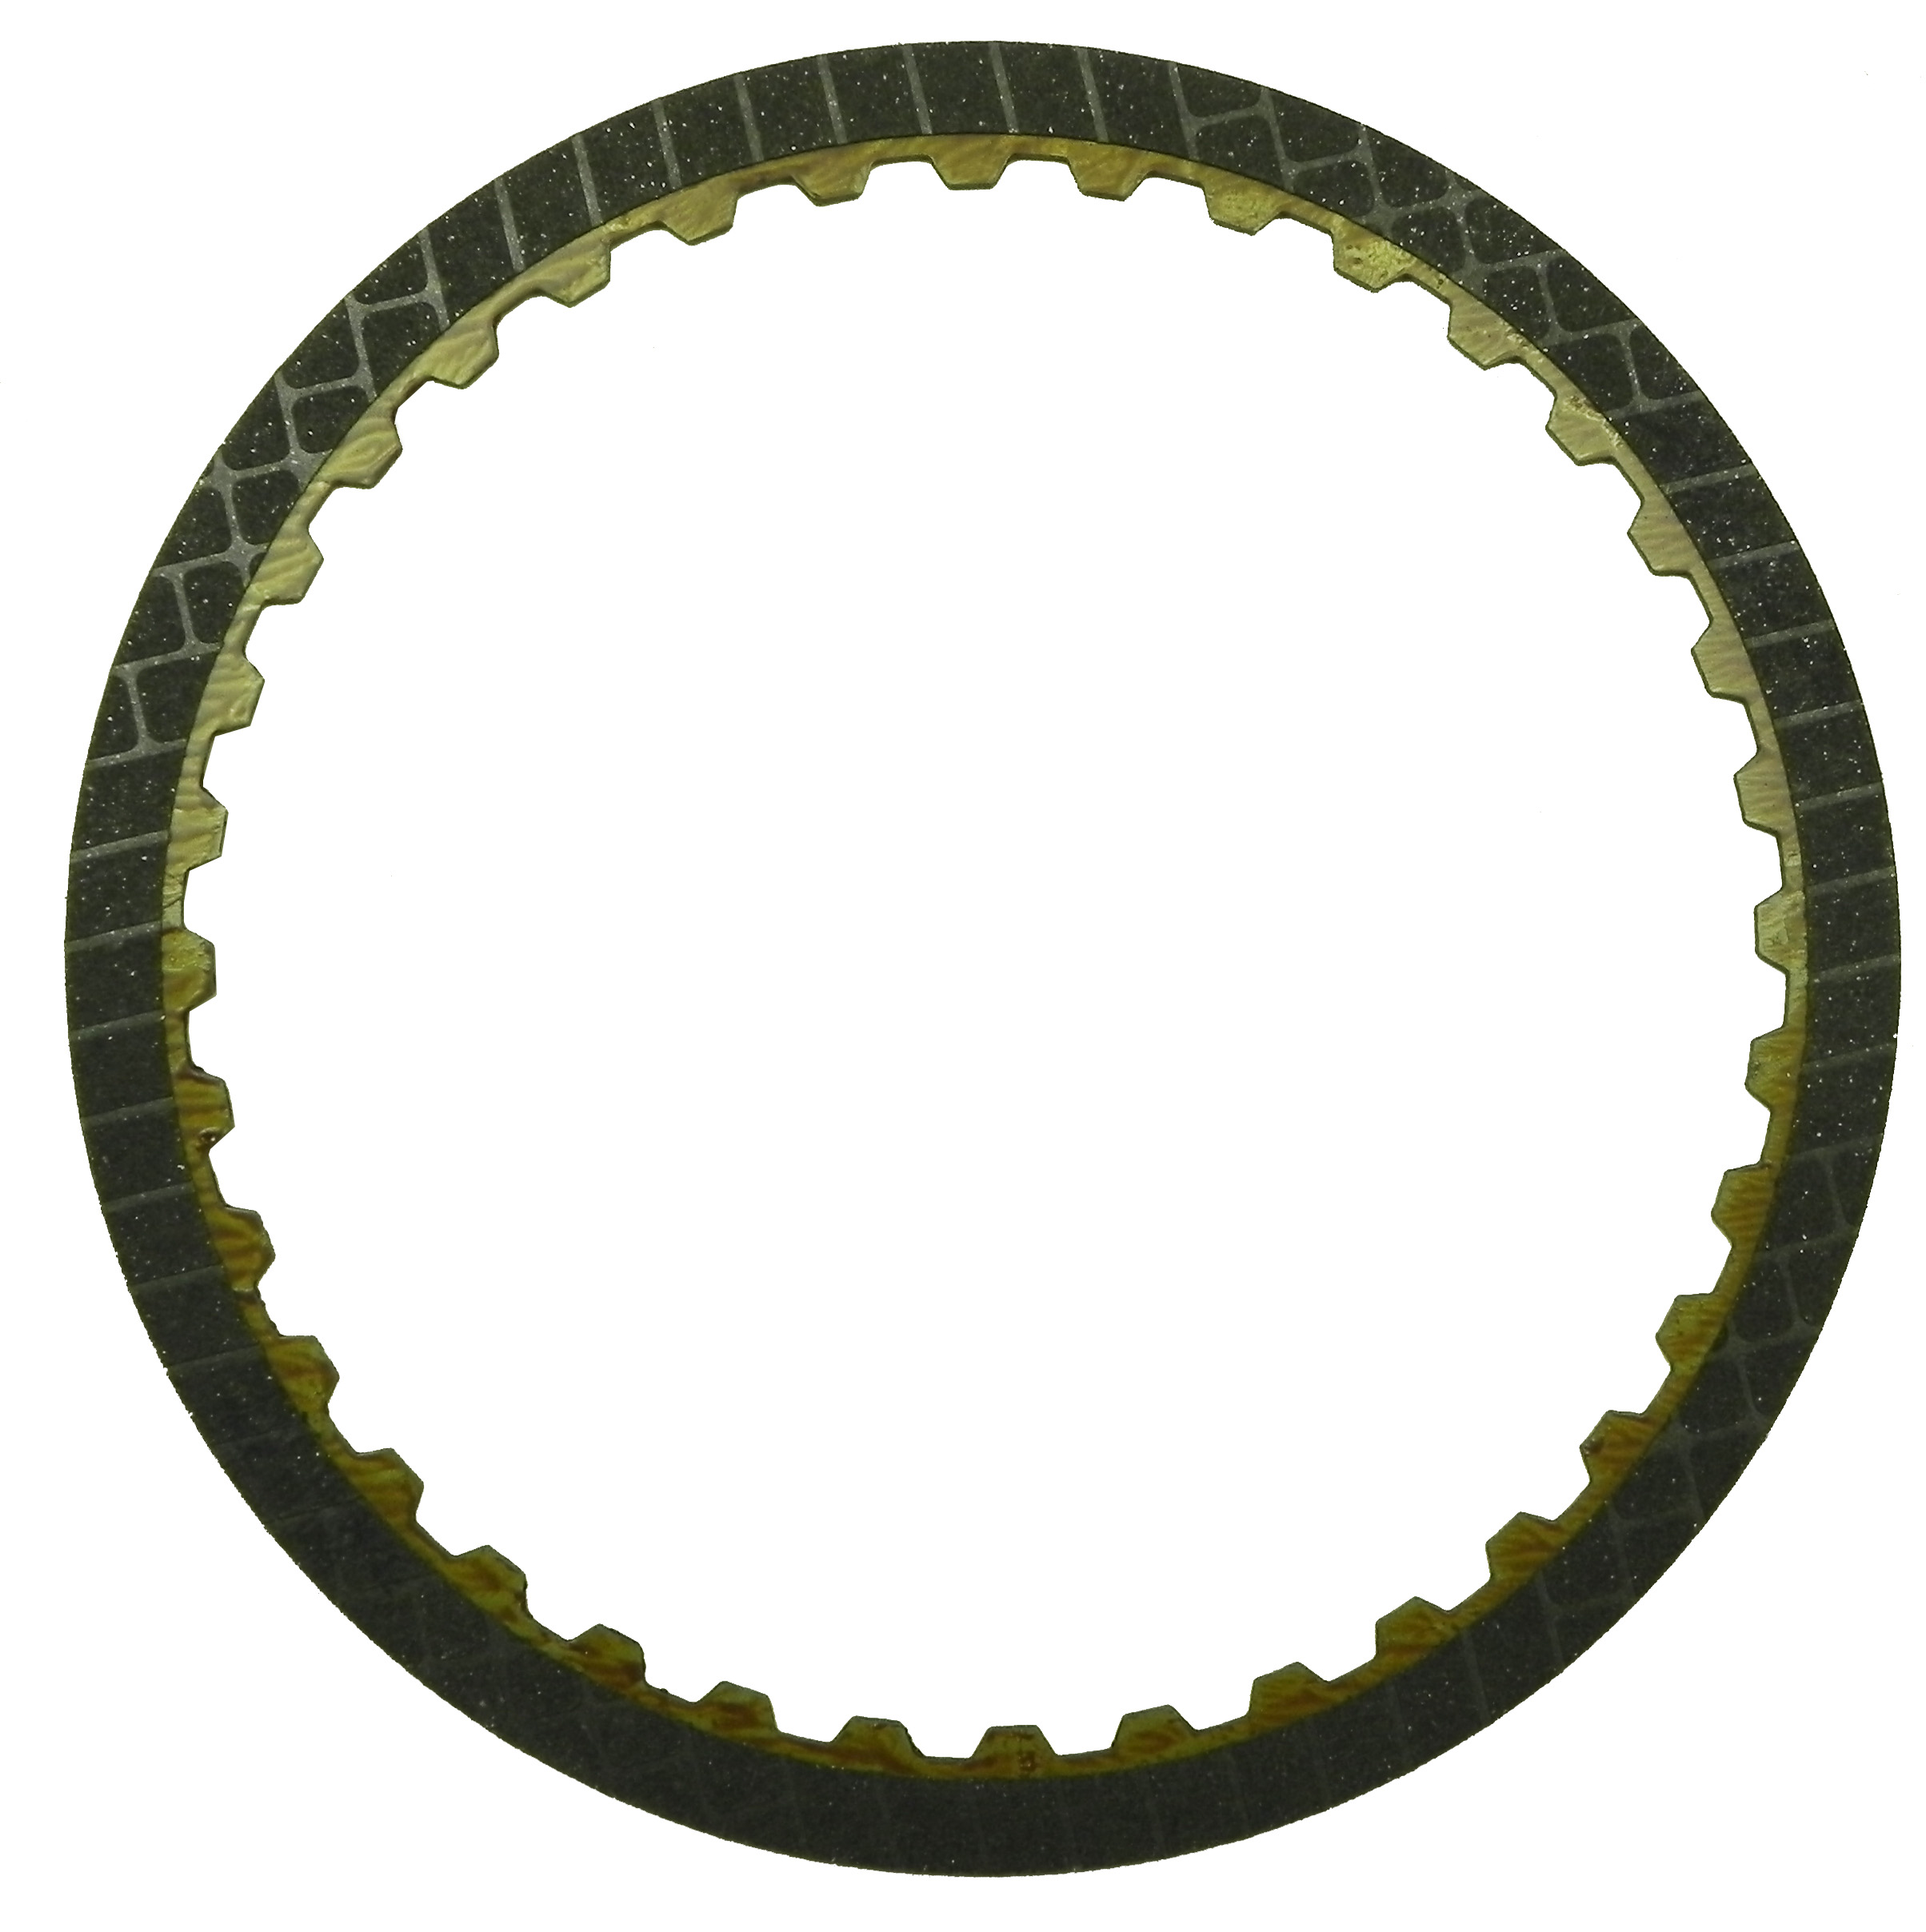 R560470 | 2007-ON Friction Clutch Plate High Energy C4 Coast Clutch (Waved) High Energy